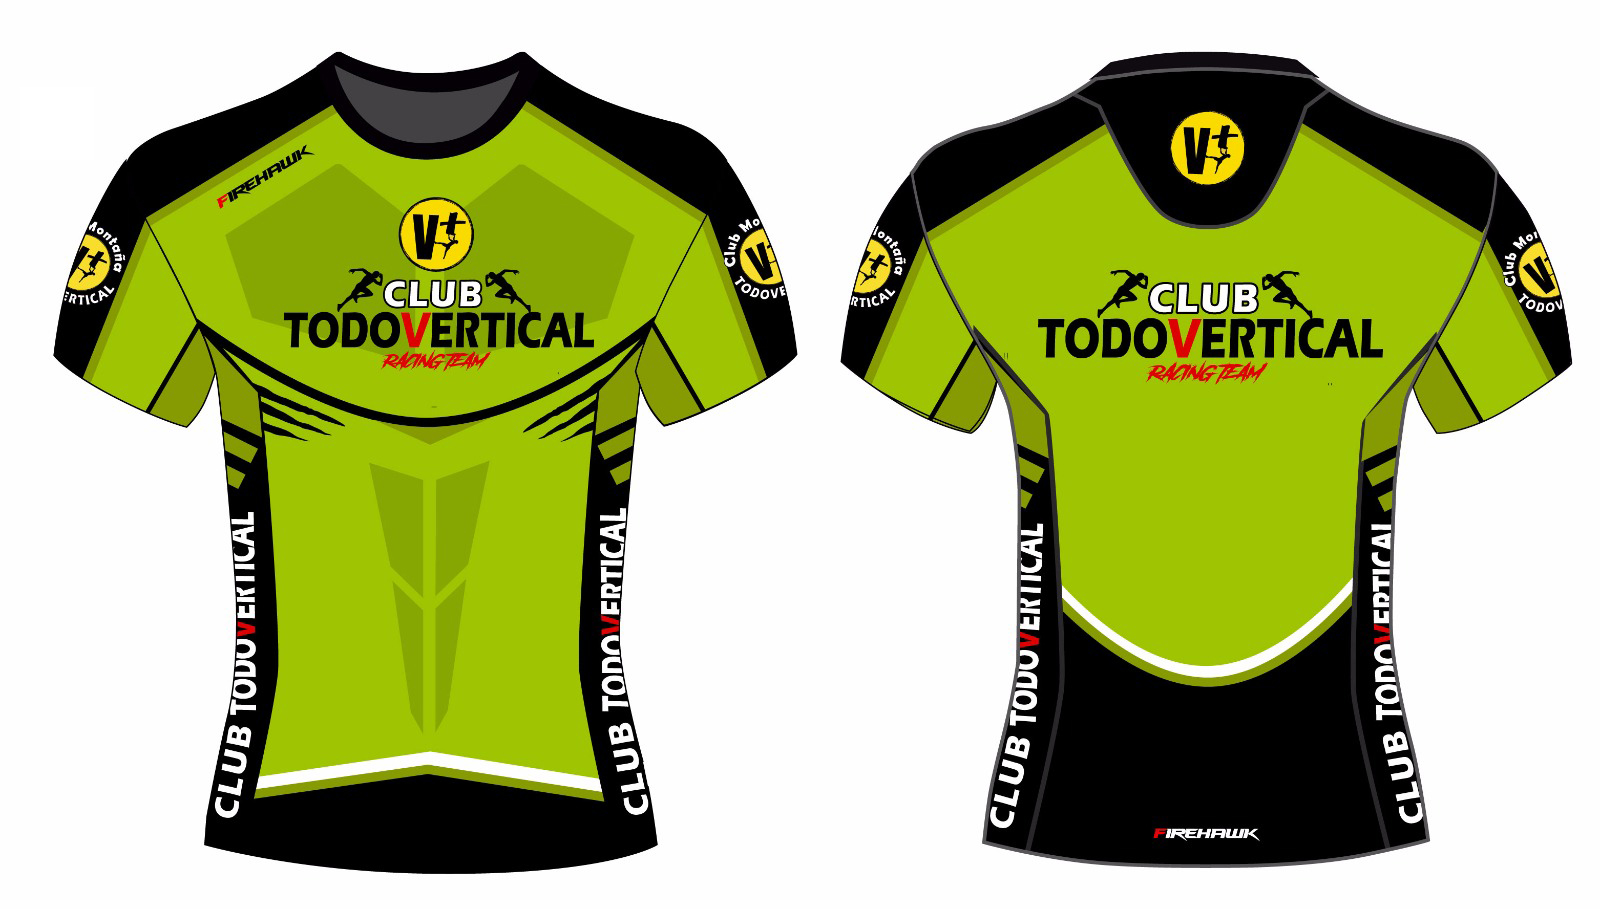 747af959393 CLUB DE MONTAÑA TODOVERTICAL (MADRID) - MERCHANDISING - CAMISETAS ...